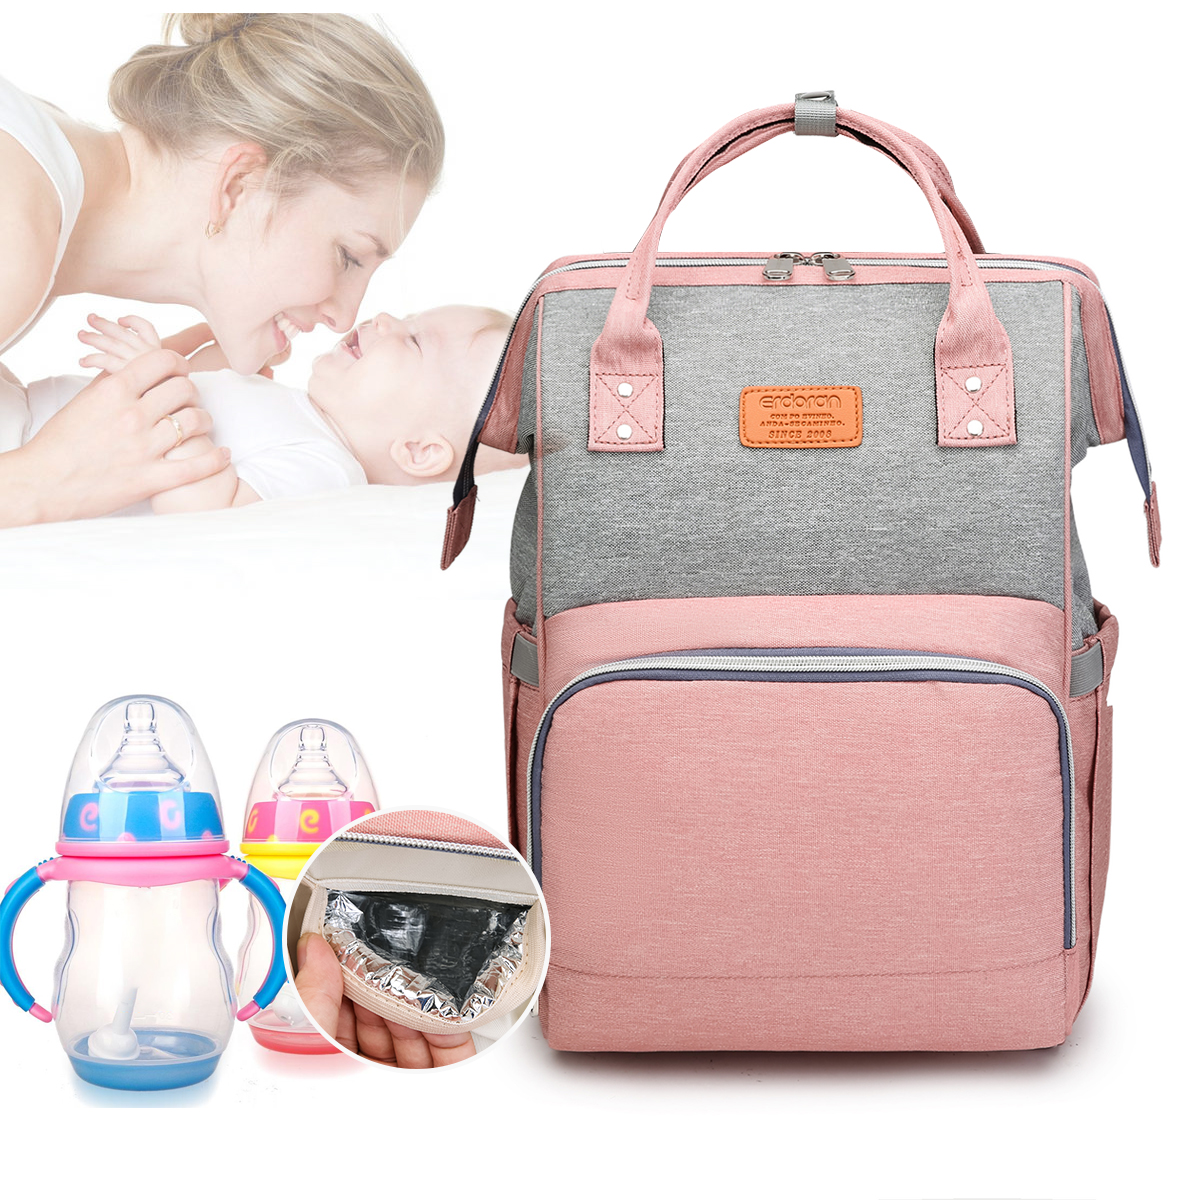 Patchwork Mommy Bag Baby Diaper Bag Waterproof Baby Mummy Changing Bag Nappy Bag